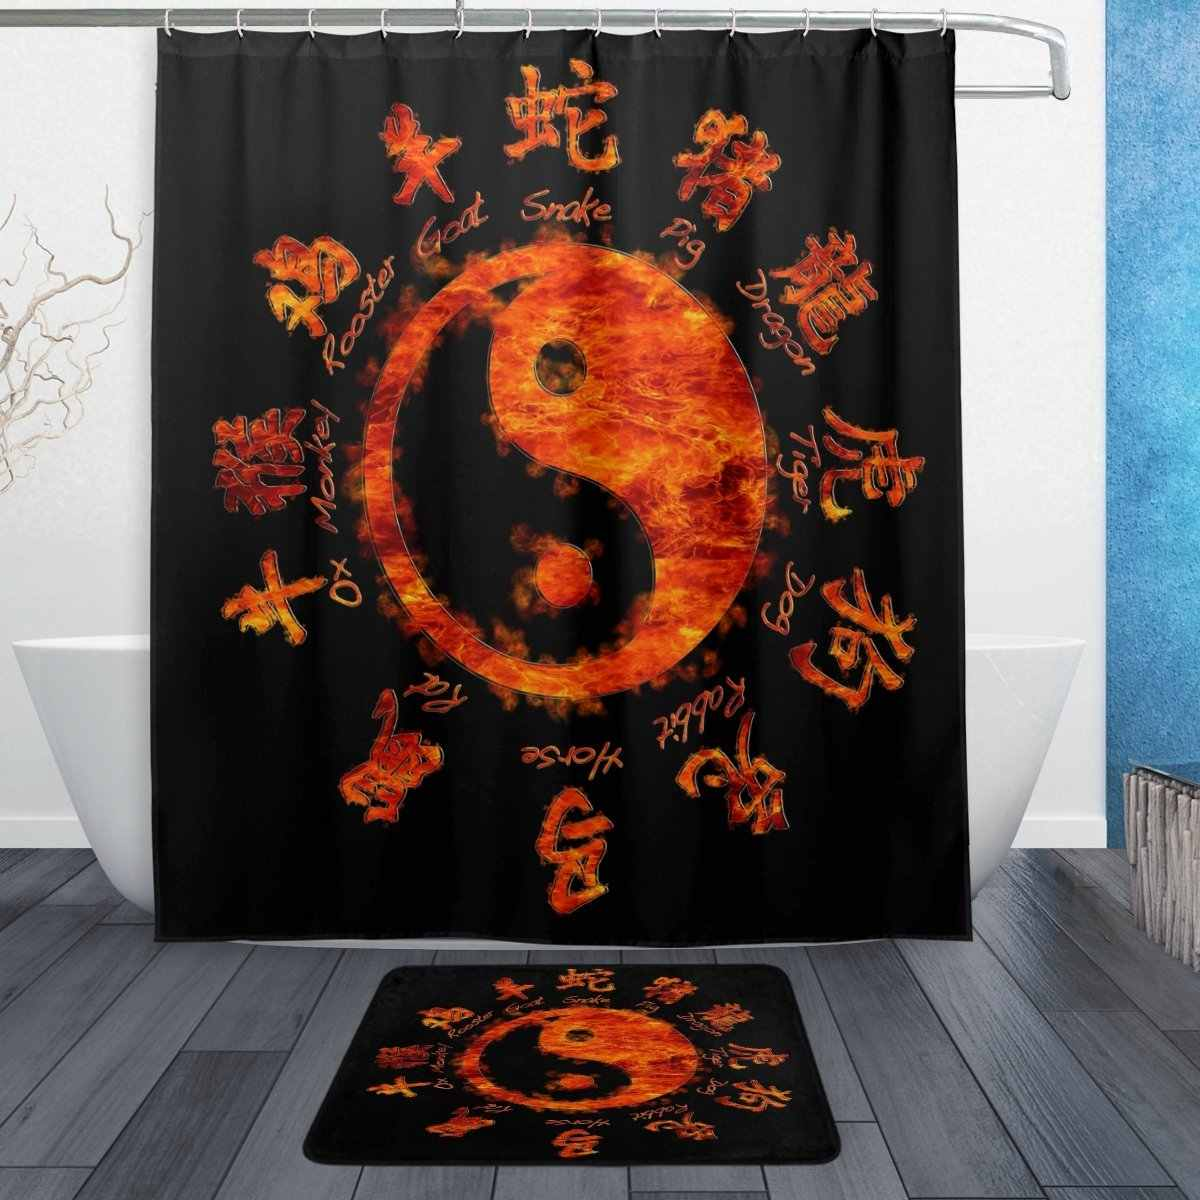 Asian Chinese Zodiac Signs60 X 72 Inches Shower Curtain And Mat Set Ying Yang Waterproof Fabric Bathroom Curtain